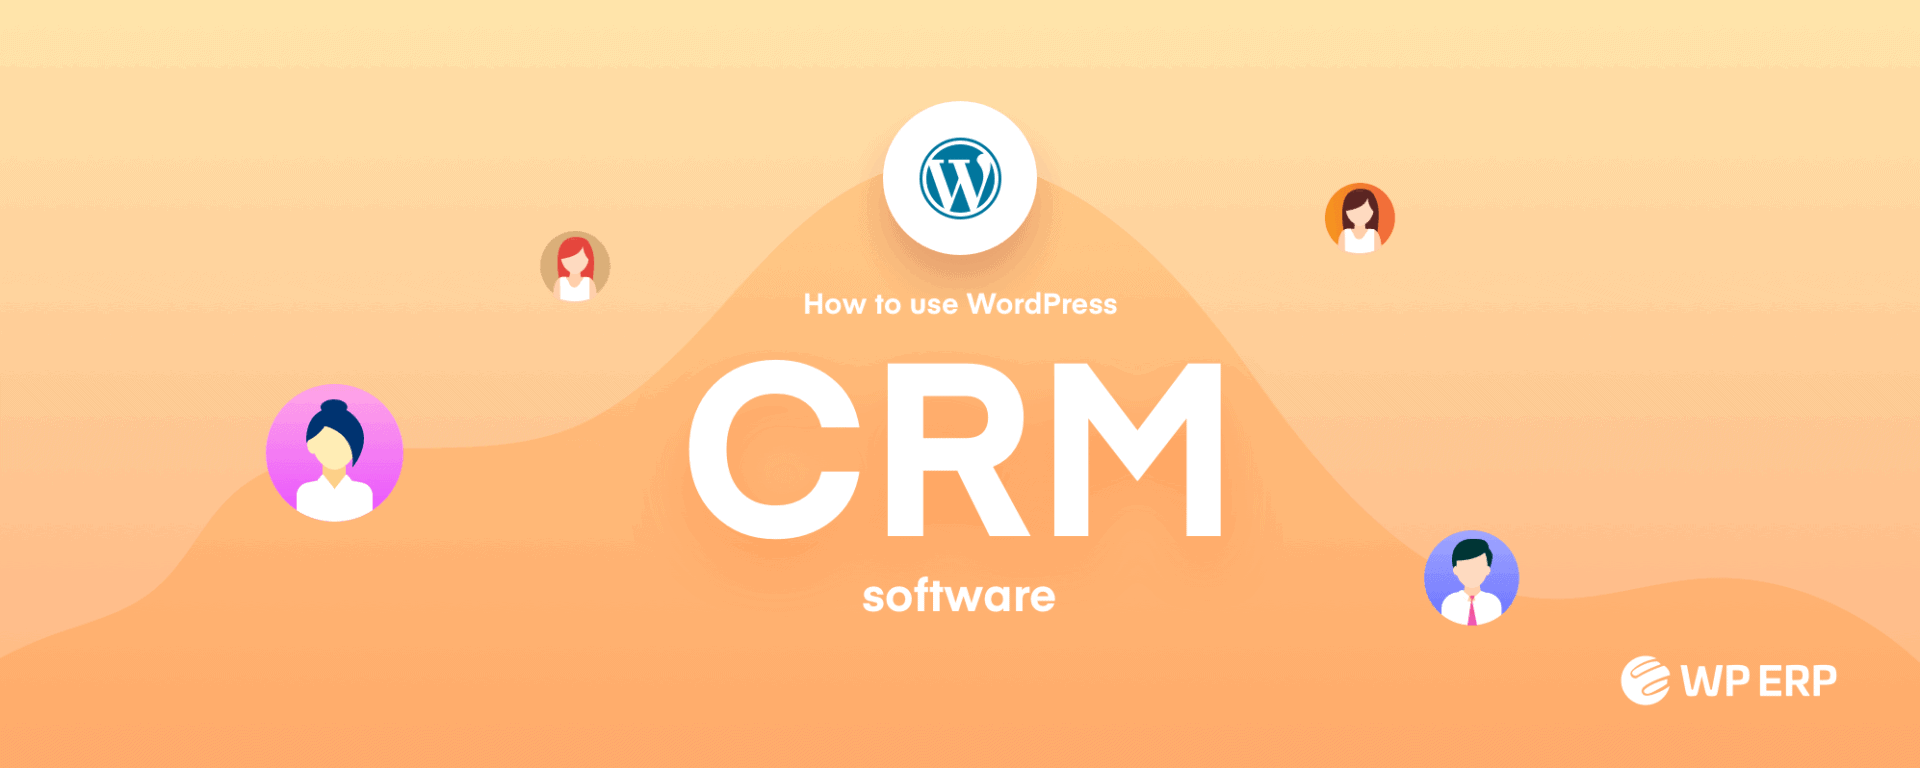 How-to-use-WordPress-CRM-software